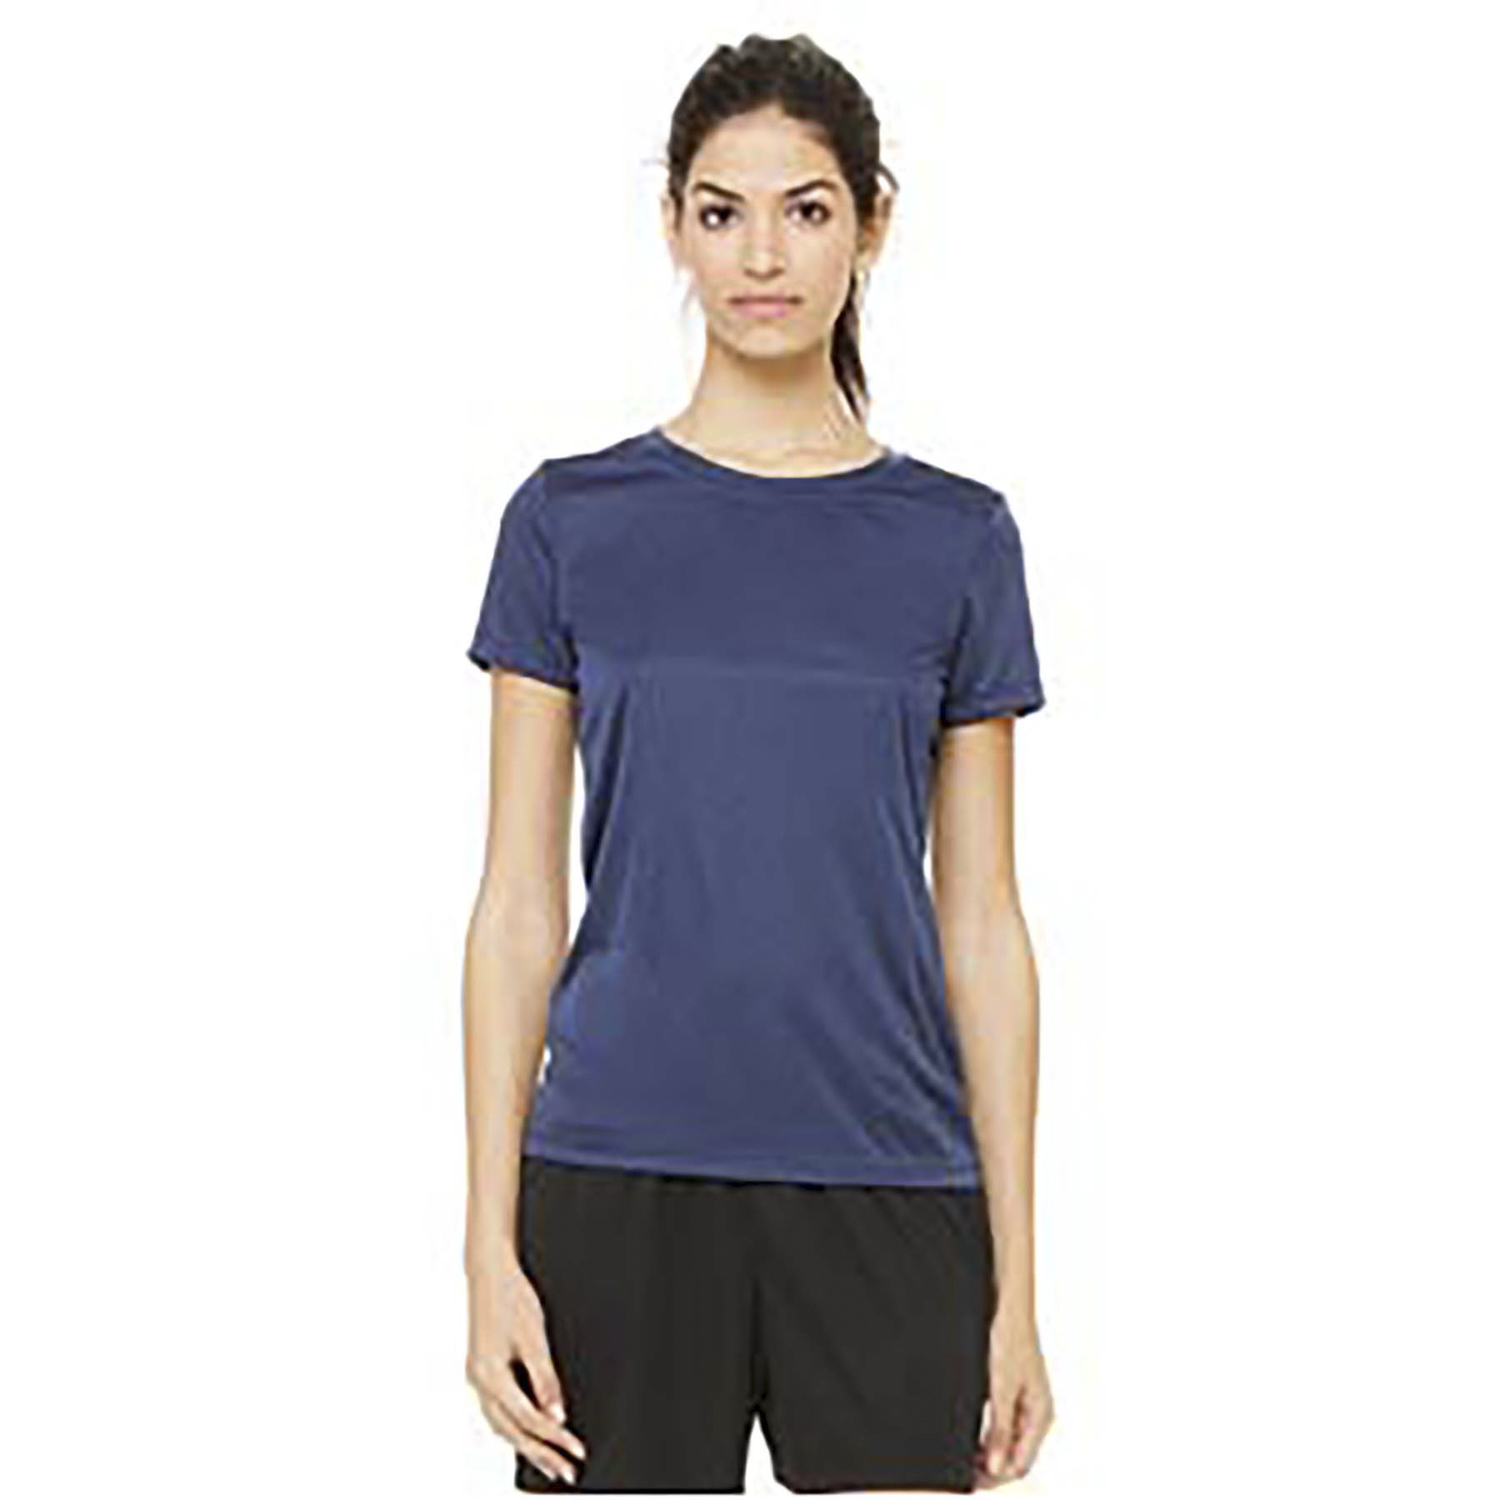 All Sport Ladies Performance Short Sleeve Shirt